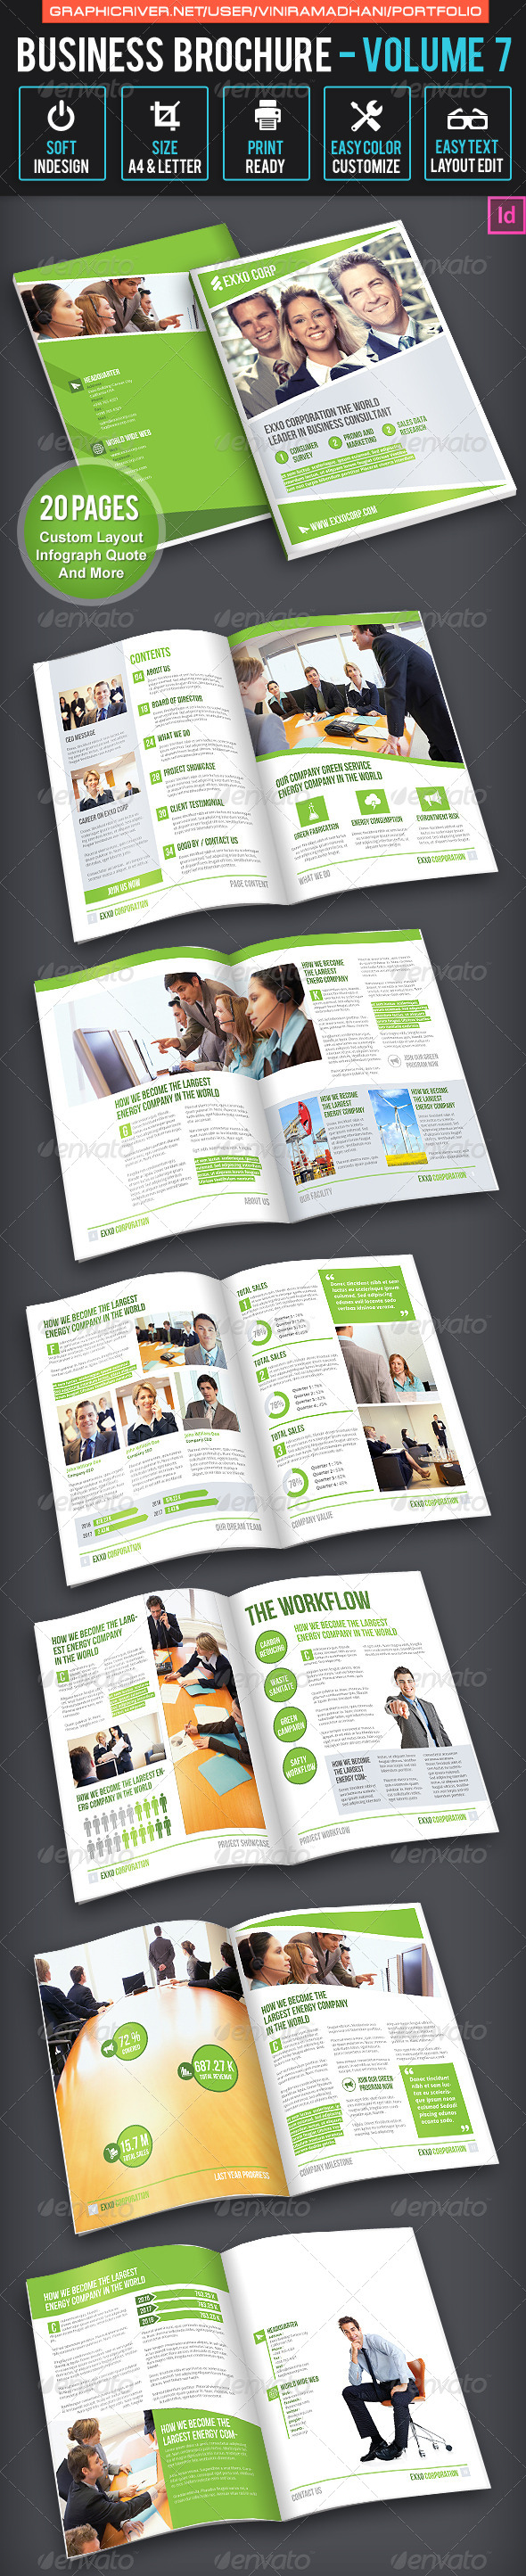 GraphicRiver Business Brochure Volume 7 6627602